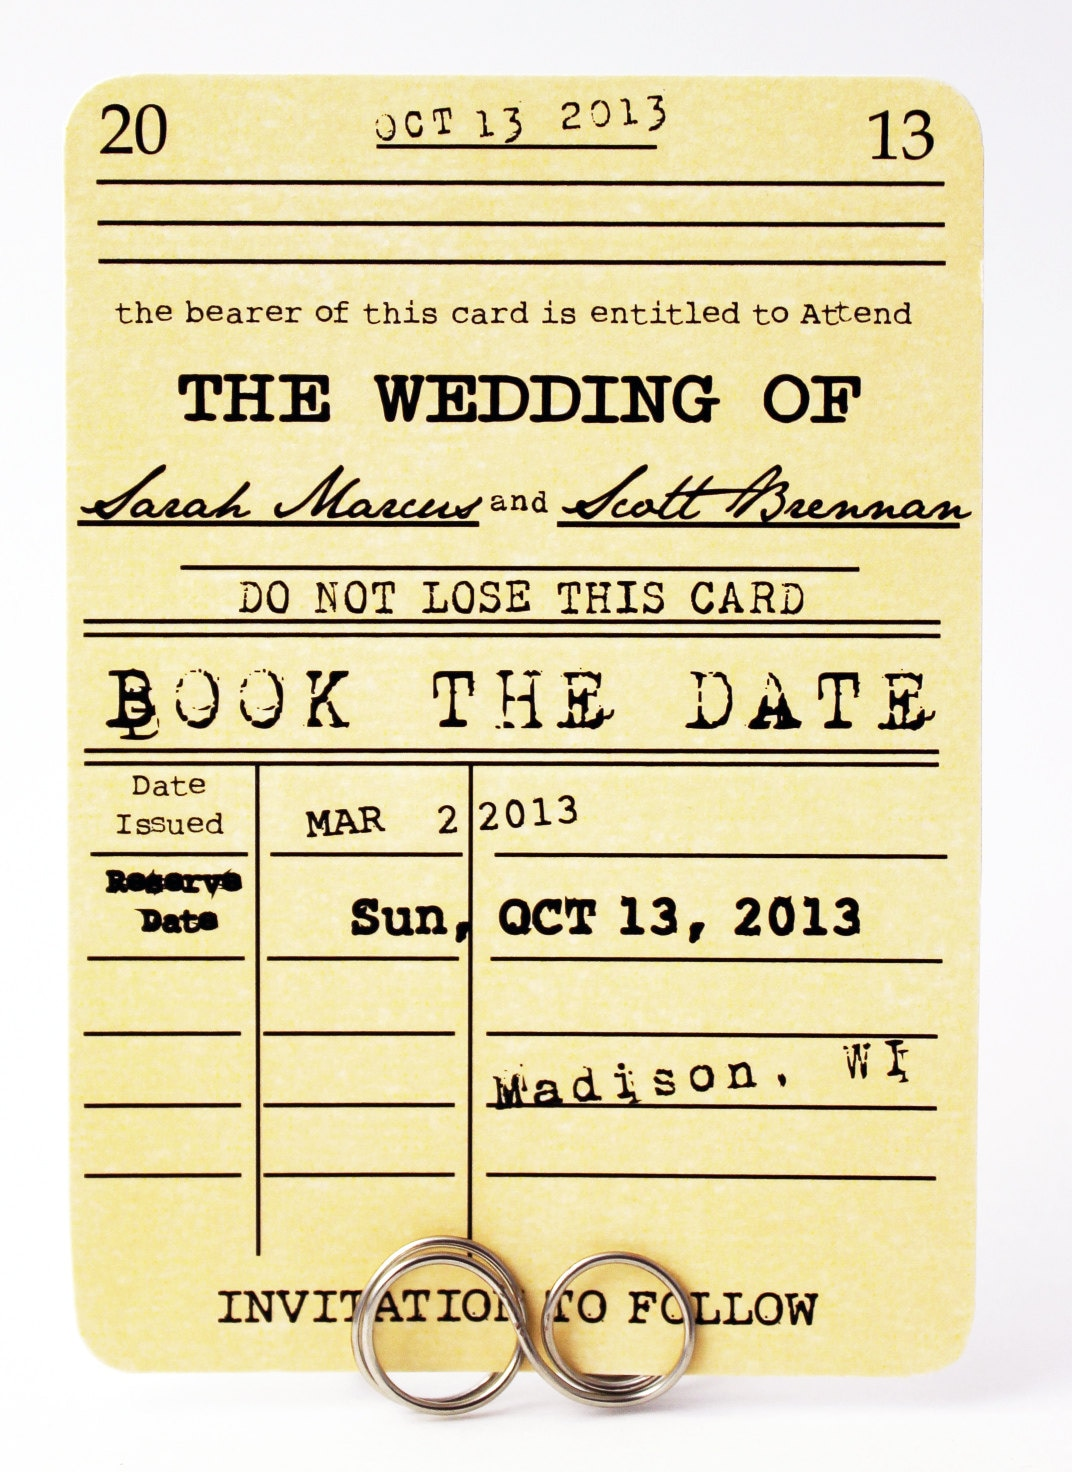 Save The Date Card Book The Date Book Wedding Themed Vintage Save The Date Card